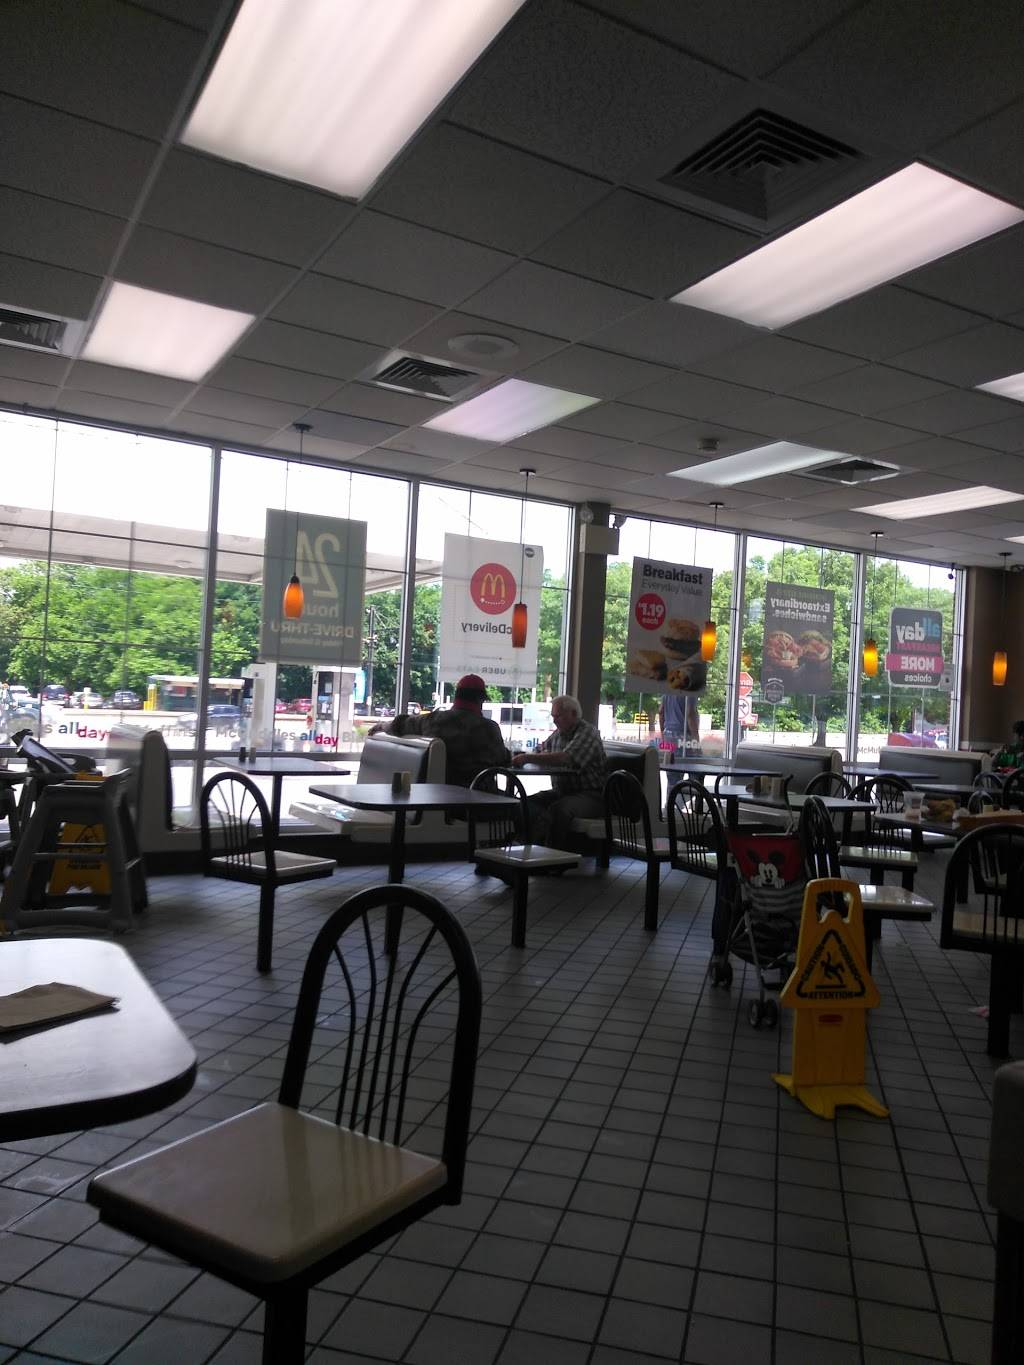 McDonalds | cafe | 223 W Main St, Norristown, PA 19401, USA | 6102723809 OR +1 610-272-3809